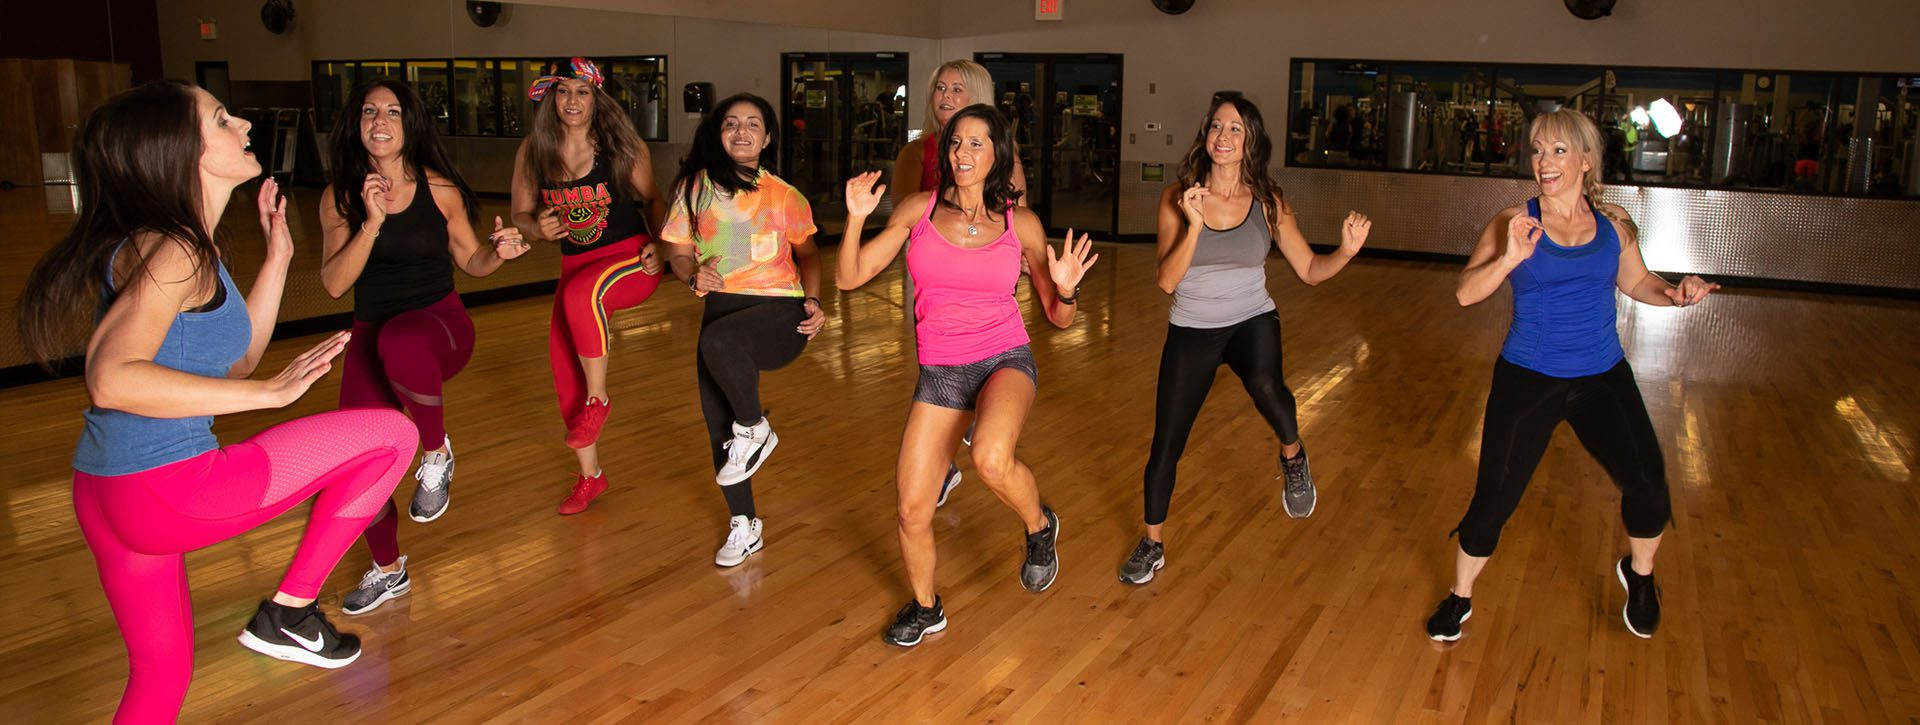 Group fitness class doing zumba.